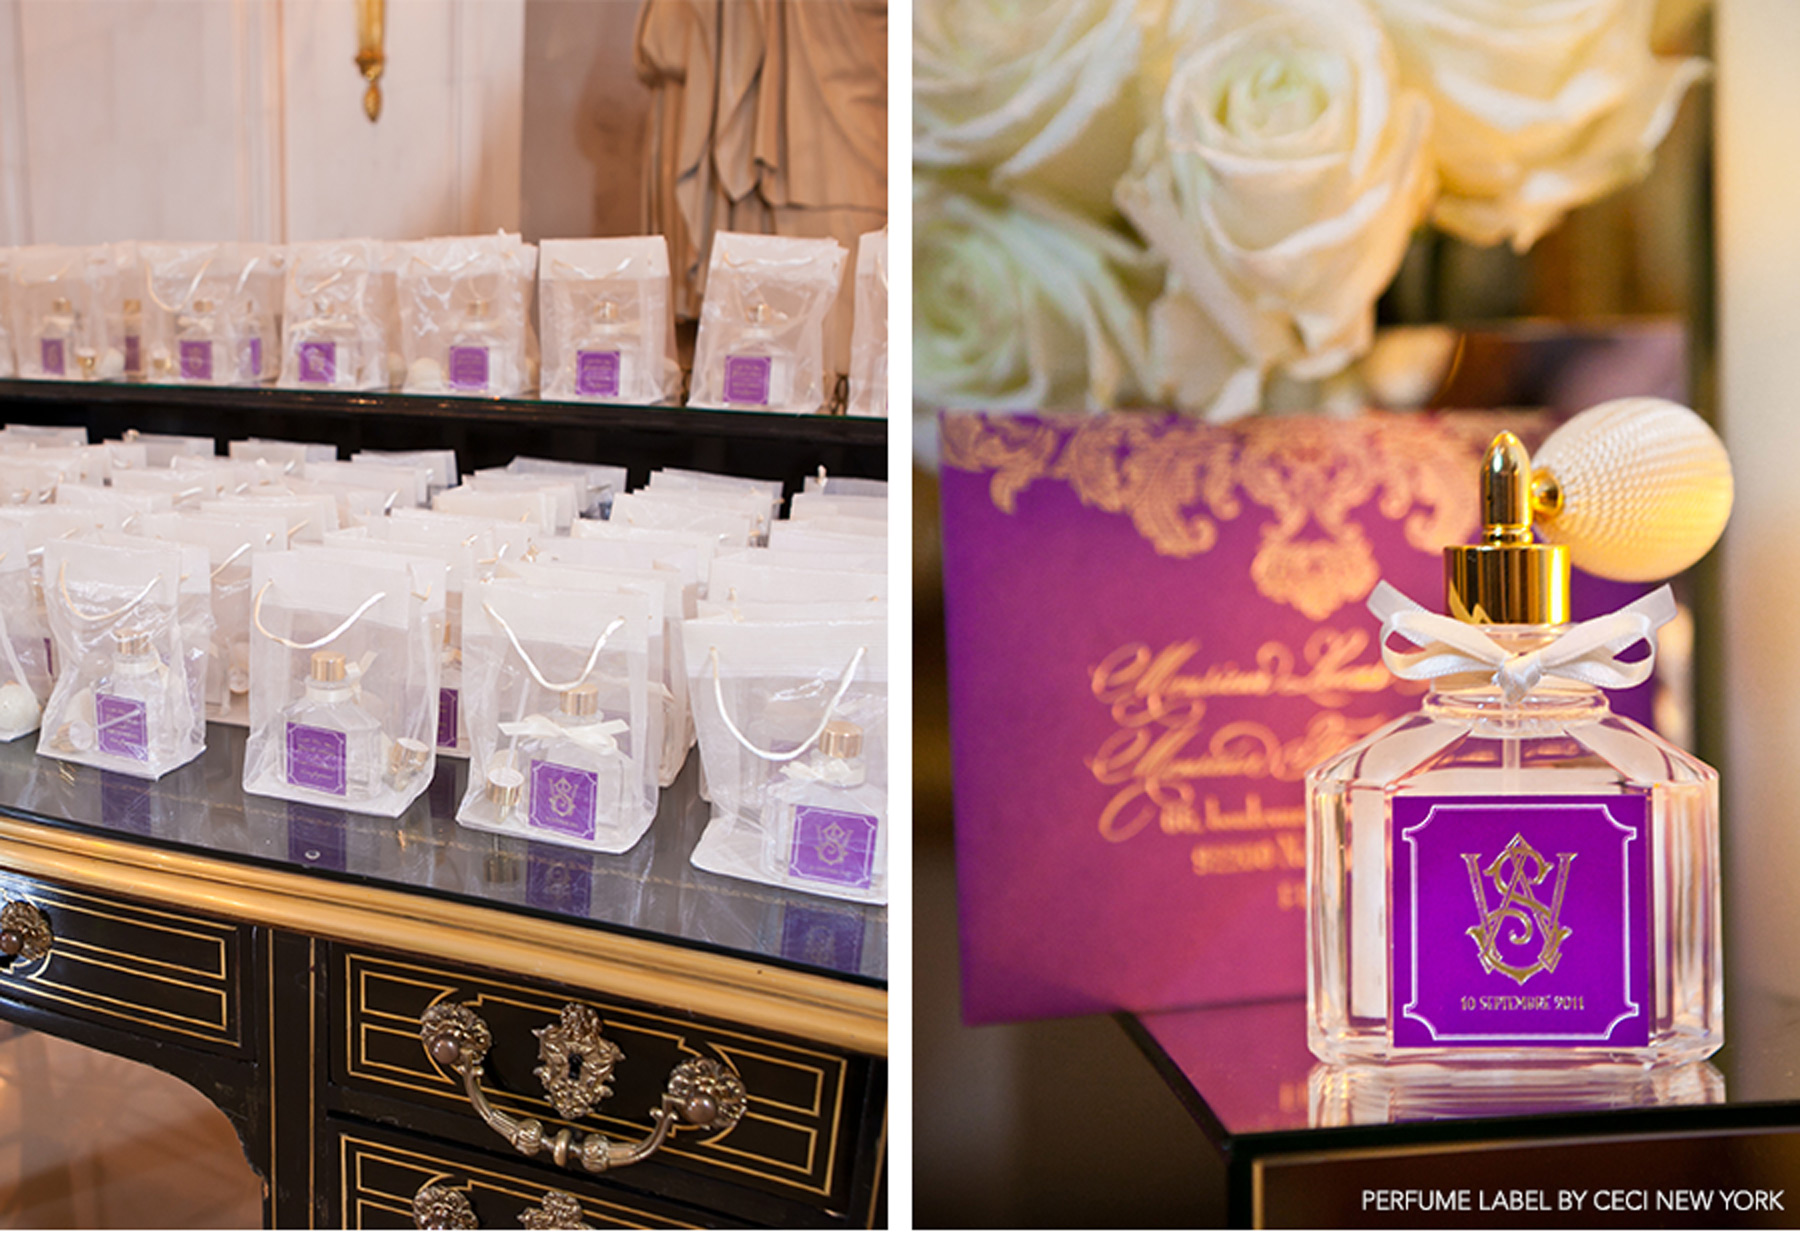 Our Muse - Paris Luxury Wedding - Be inspired by Lucas and Thierry's luxurious Paris wedding set in shades of elegant purple and gold - ceci new york, escort cards, perfume, unique escort cards, place cards, menus, gold, purple, foil stamping, laser-cut, favors, luxury, lucas somoza, wedding